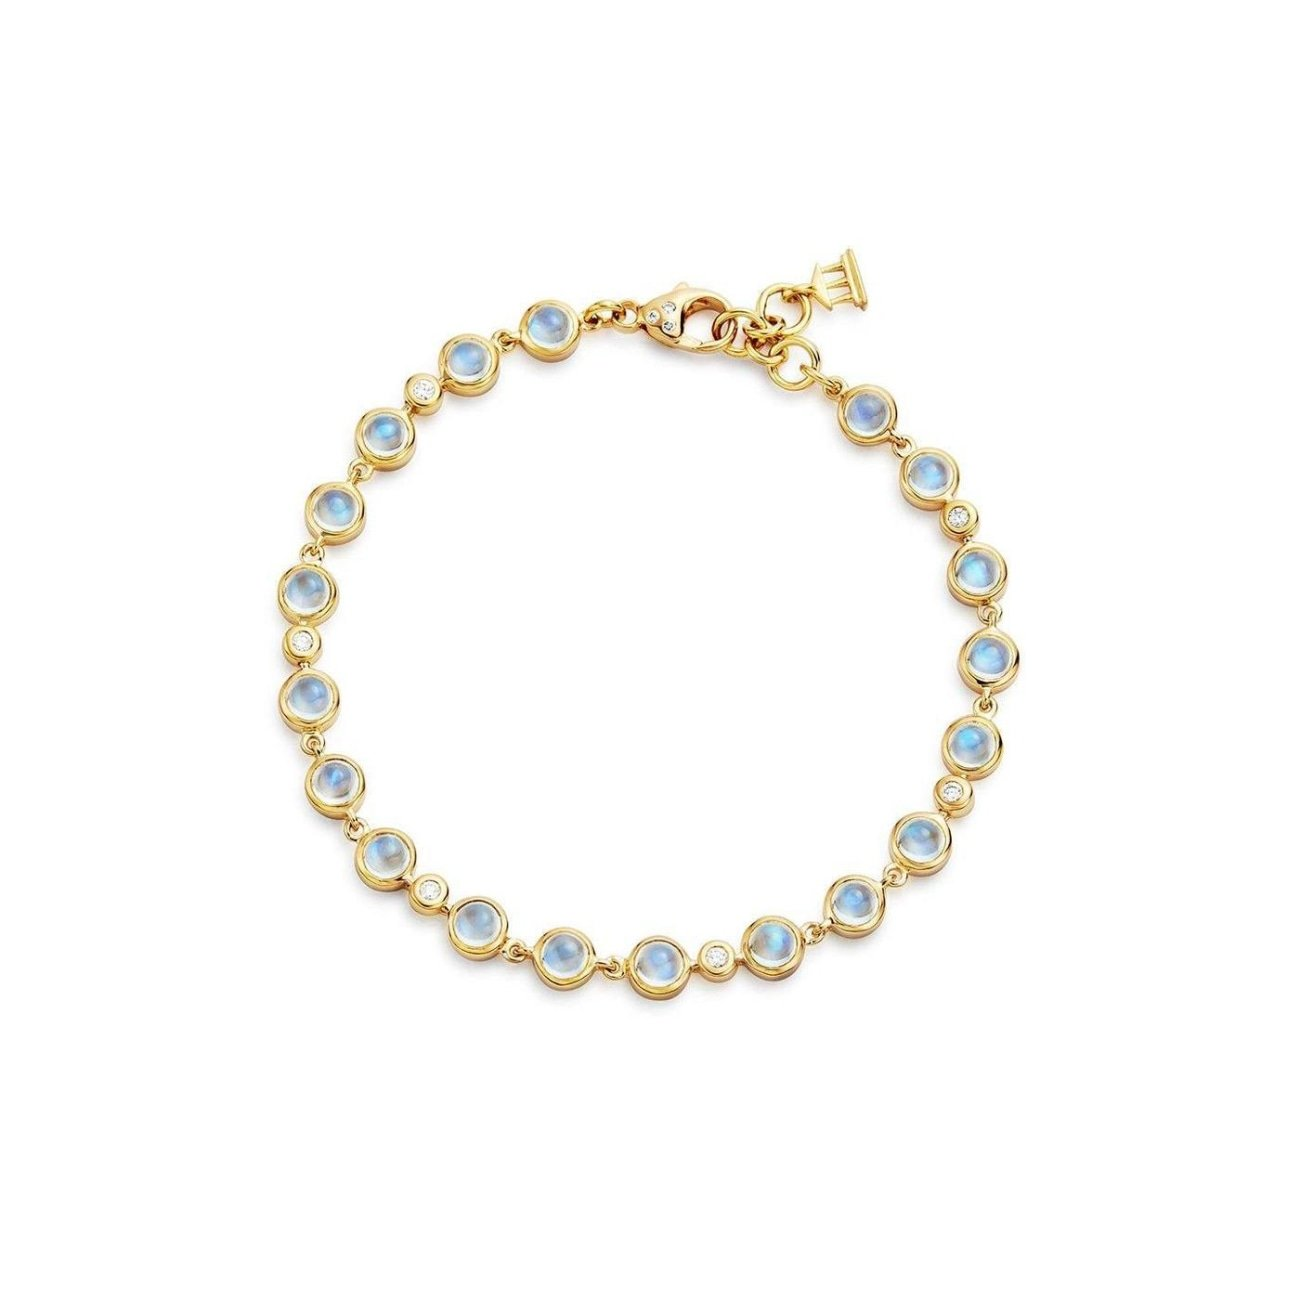 https://www.manfredijewels.com/collections/jewelry/products/18k-blue-moon-link-bracelet